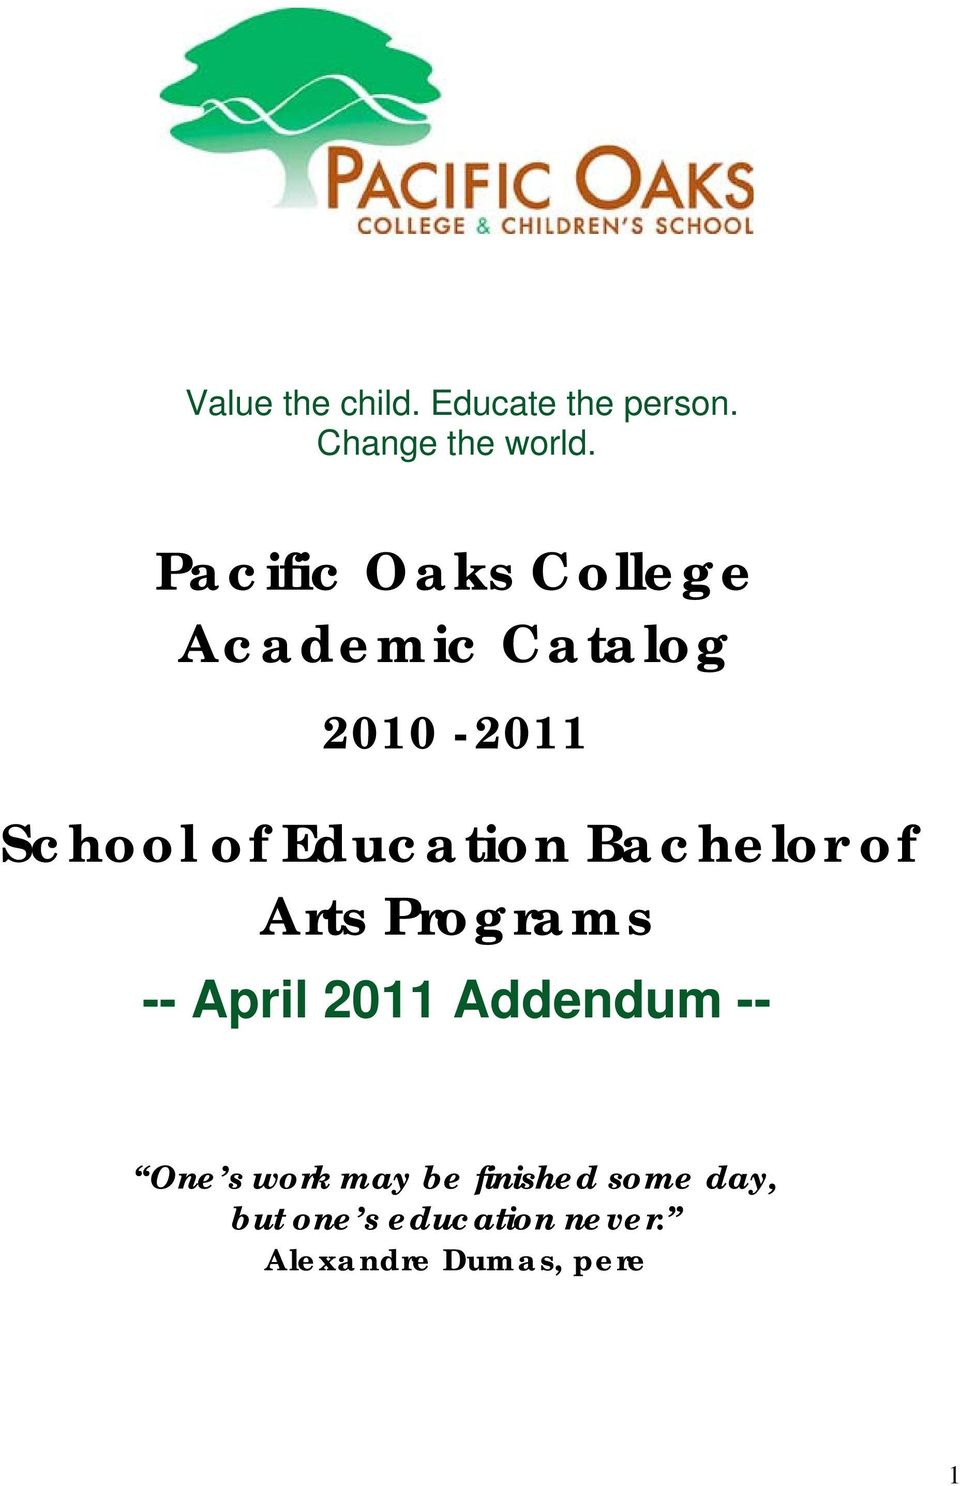 Education Bachelor of Arts Programs -- April 2011 Addendum -- One